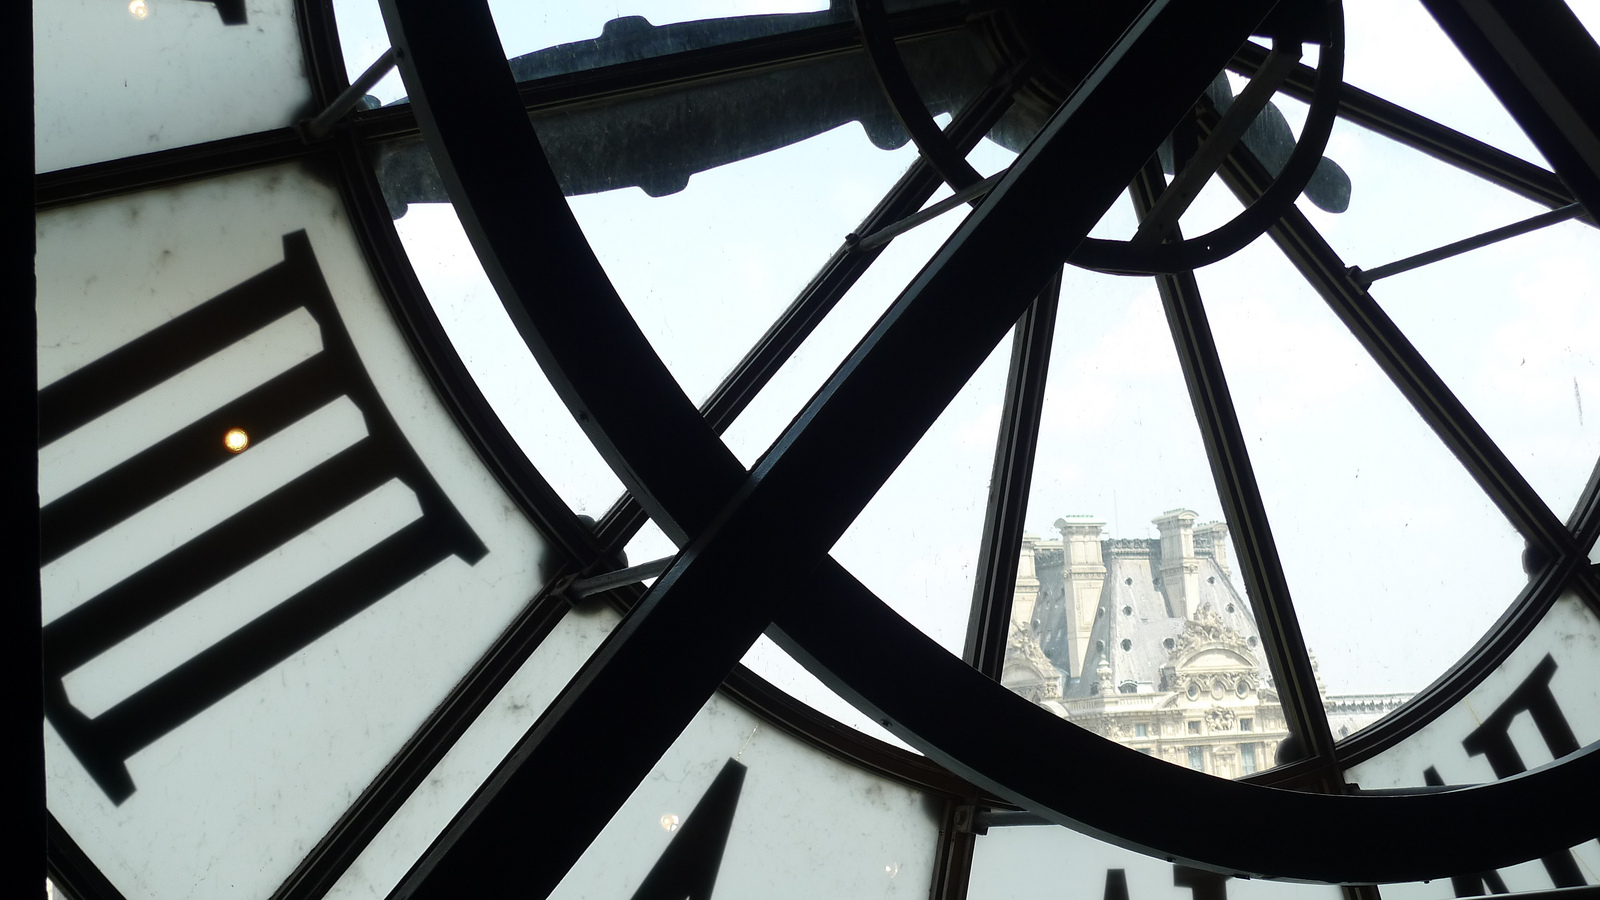 Clock tower in France